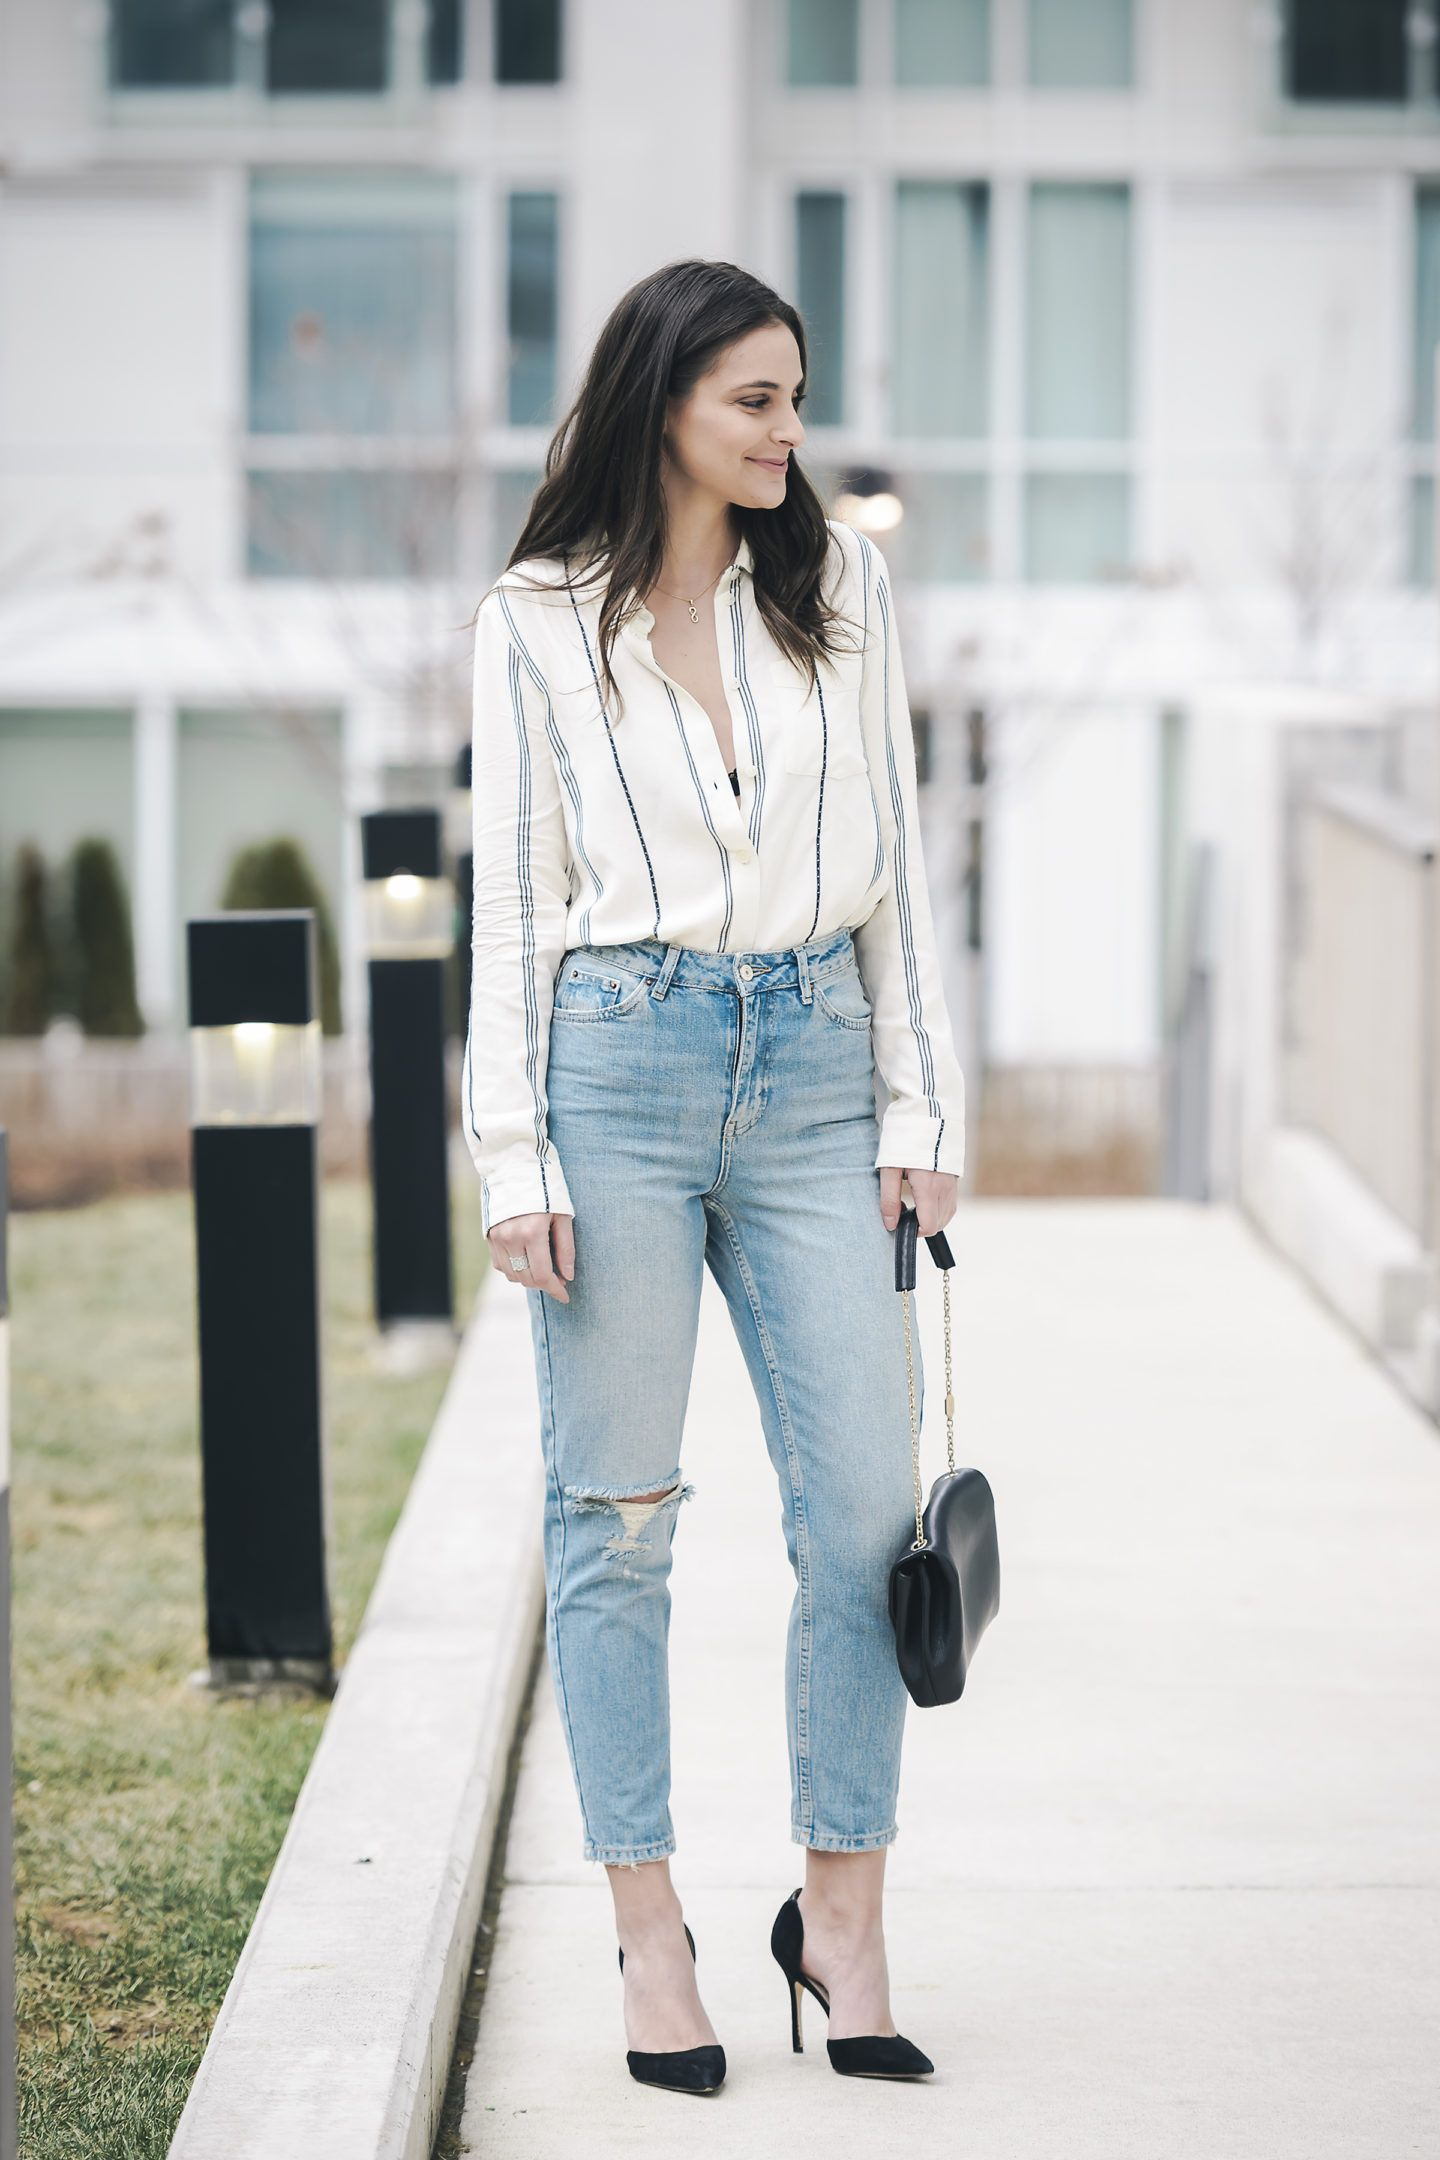 Simple Spring Outfit Ideas. Blouse and Mom Jeans outfit. More outfit ...